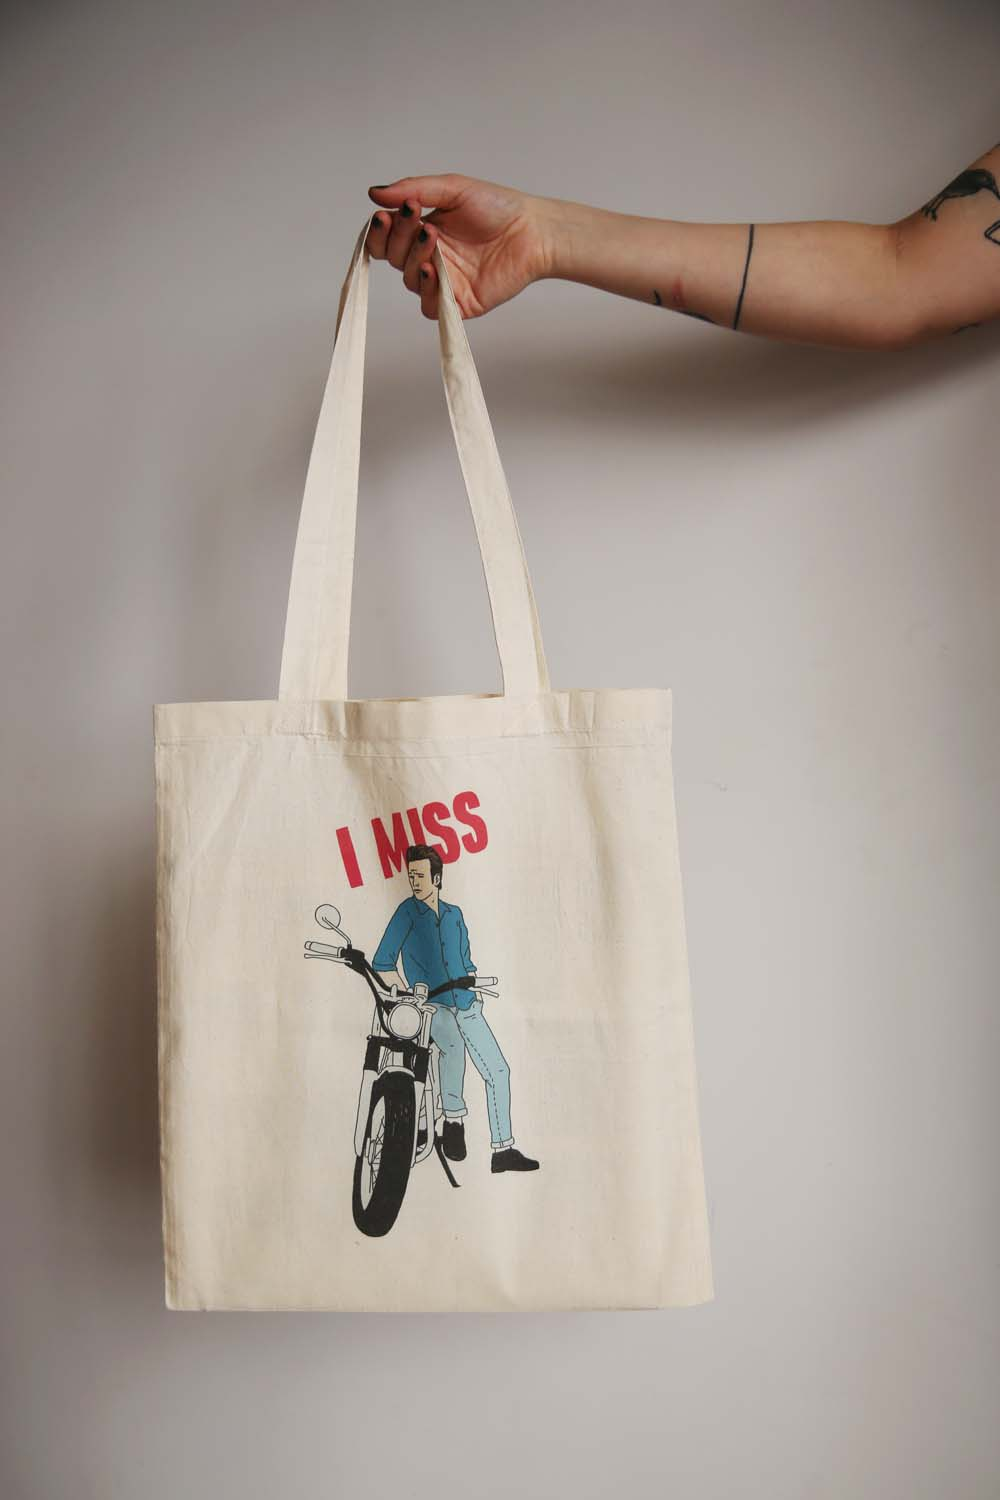 I MISS LUKE PERRY tote bag